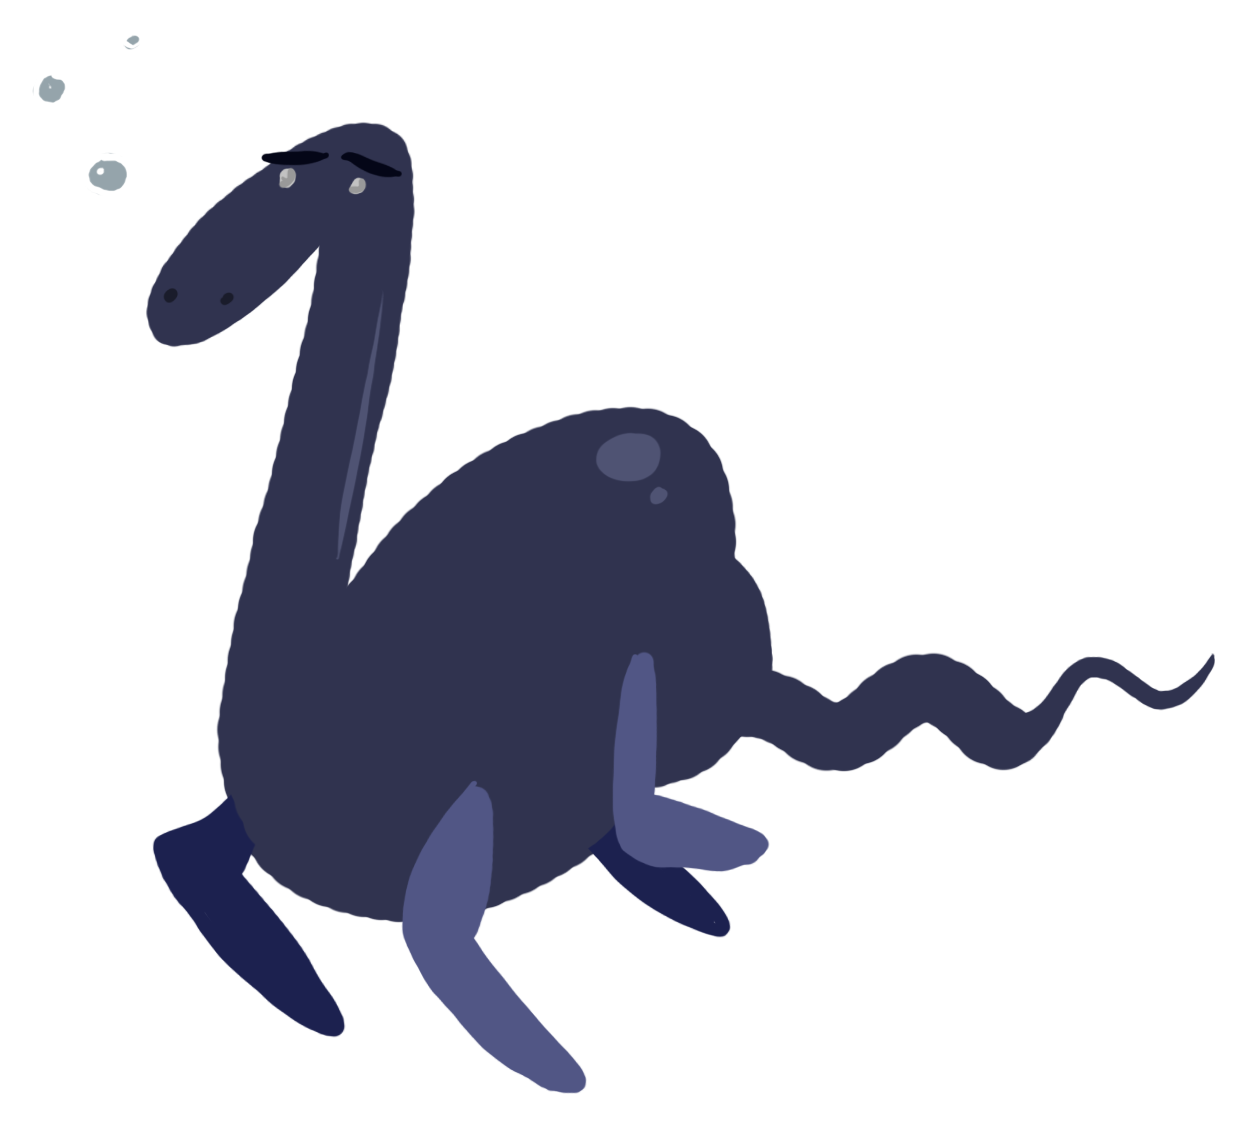 History clipart prehistory. Happy accidents prehistoric party